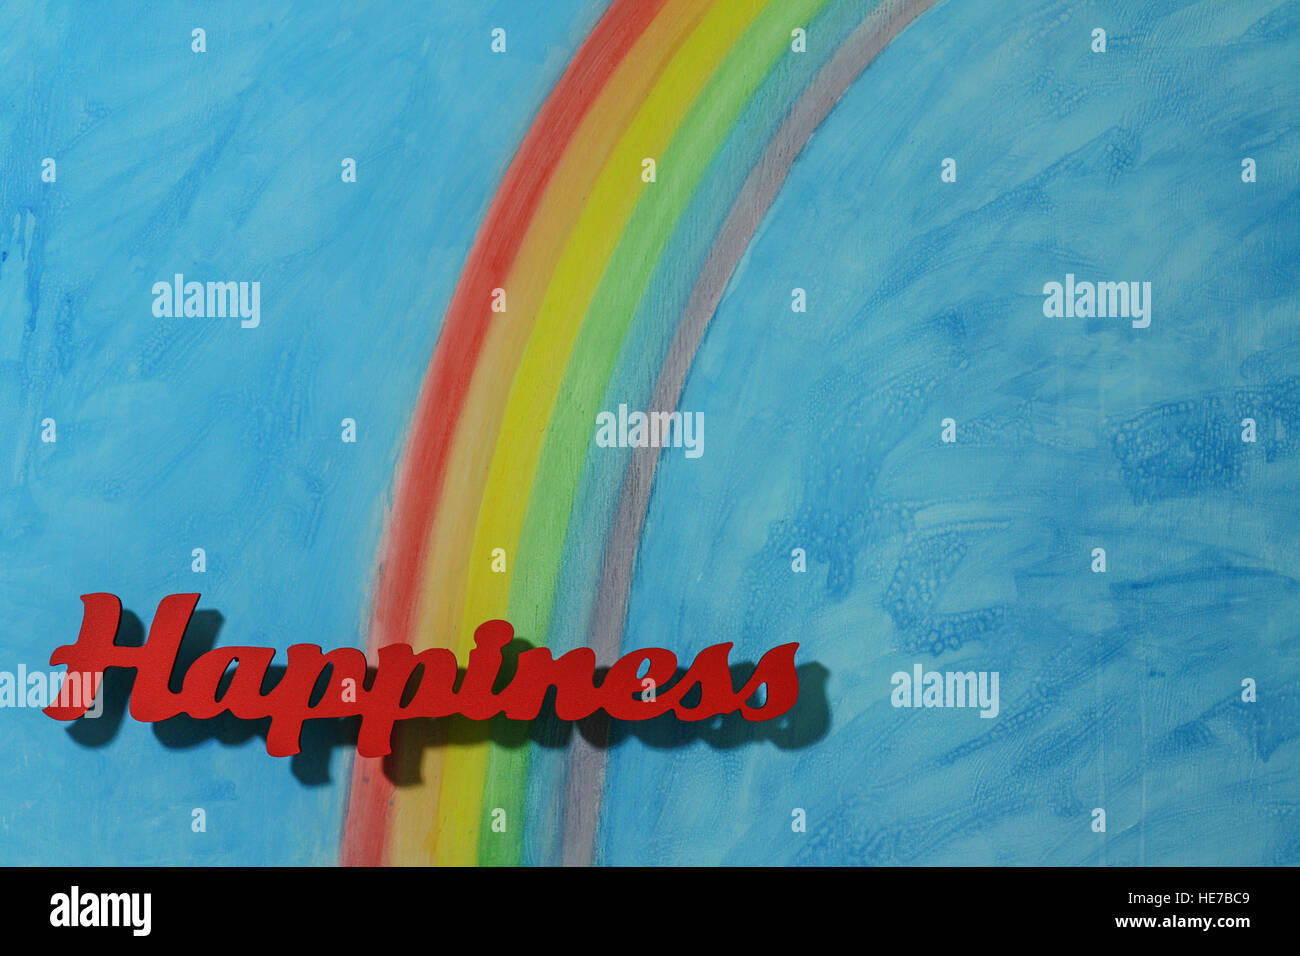 Red letters spelling the word happiness to illustrate the concept of joy, happy, love and wellness; landscape format. - Stock Image